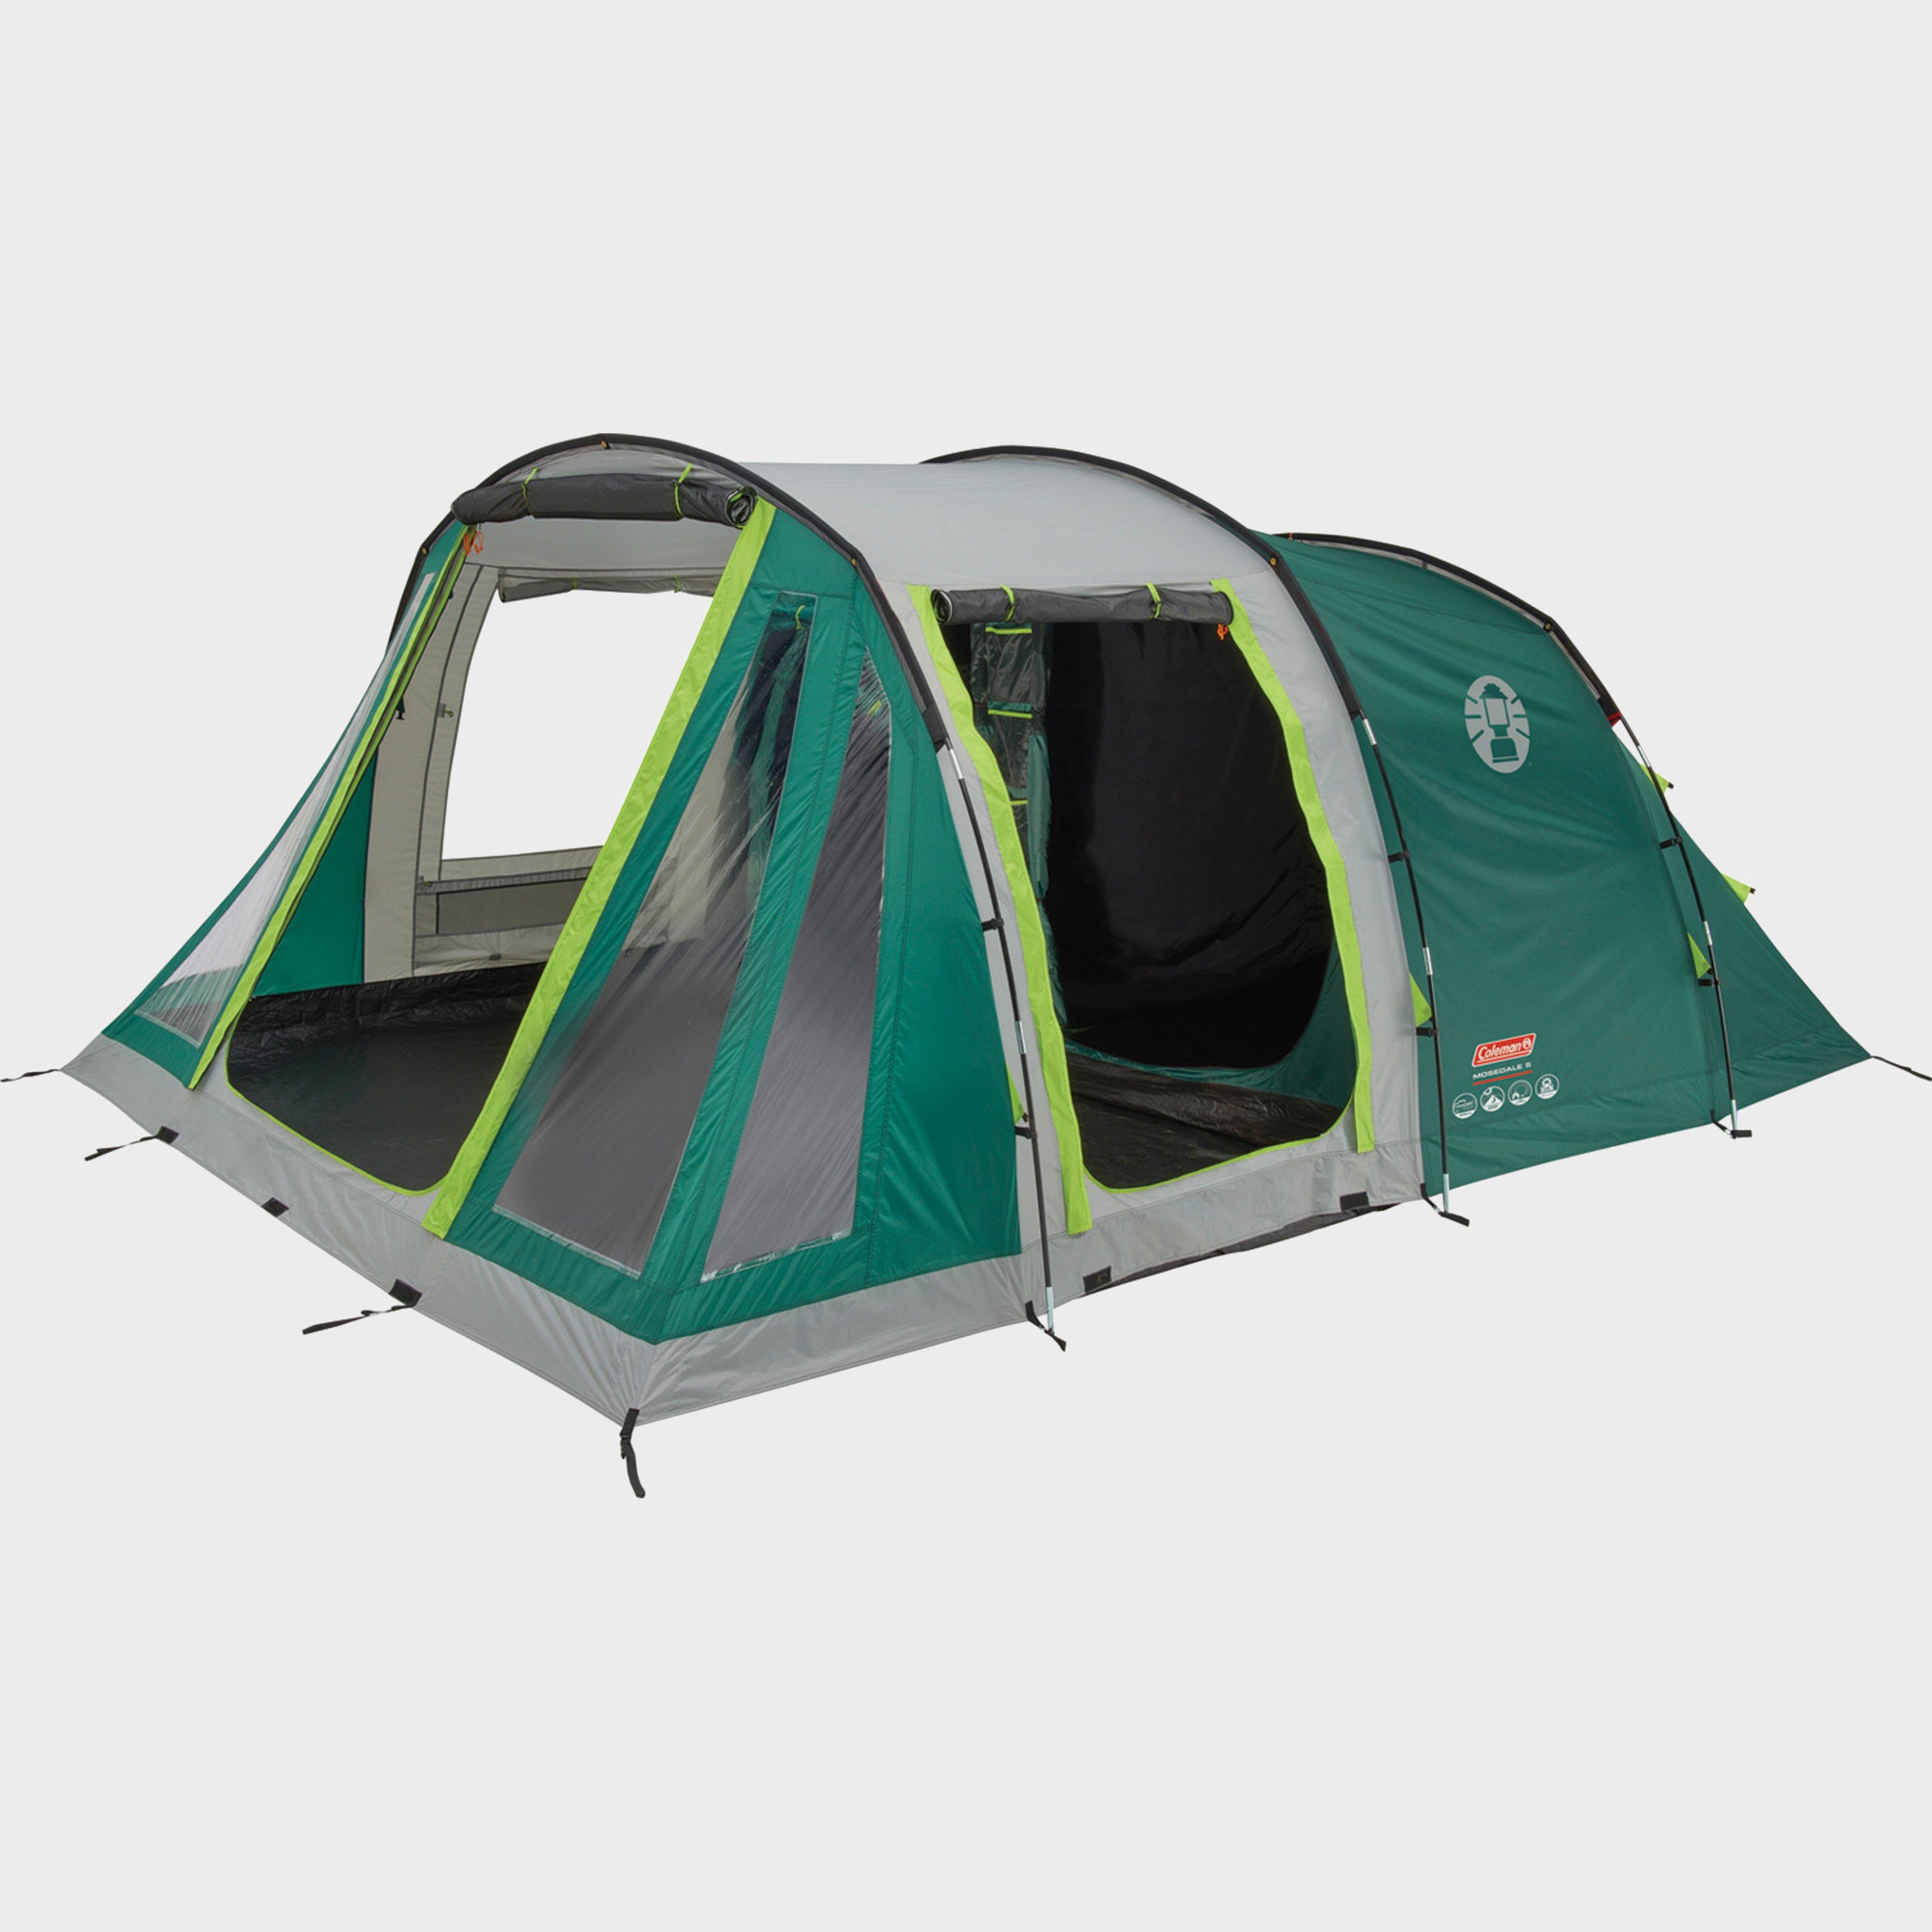 Coleman Mosedale 5 Family 5 Person Tent - Green/5, Green